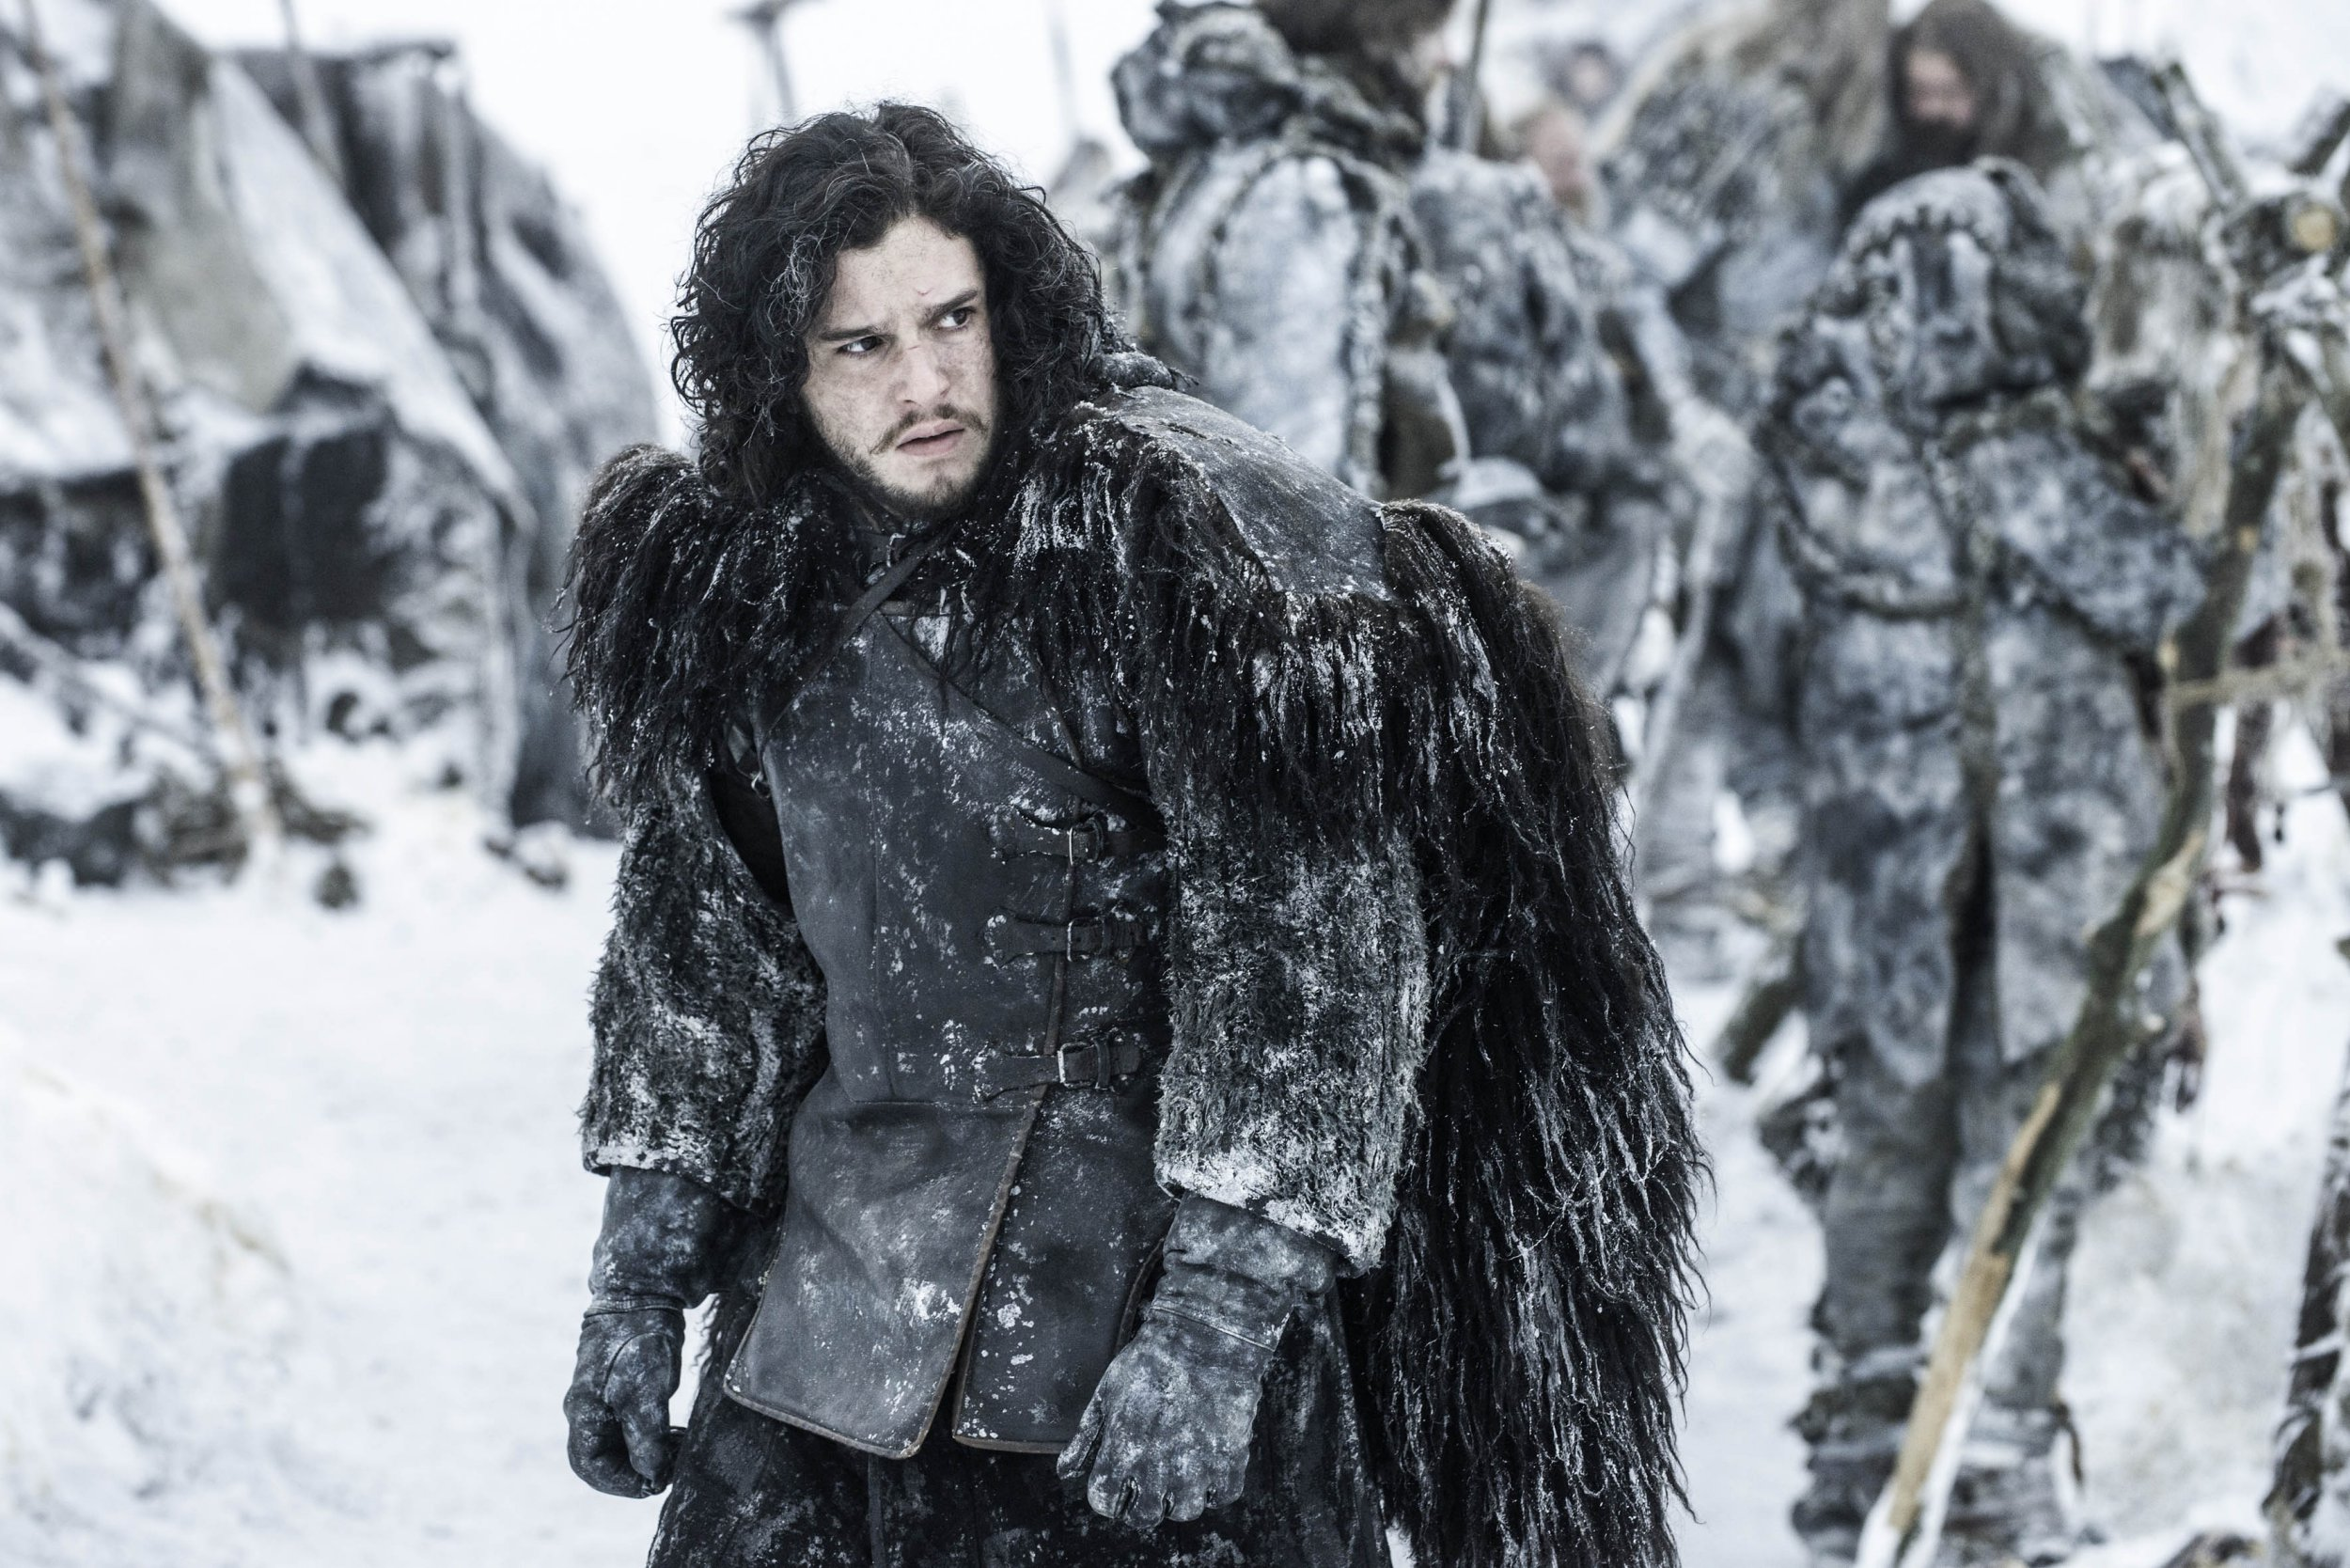 The Weeknd, SZA and Travis Scott just made Jon Snow a fight song as they drop Game Of Thrones track